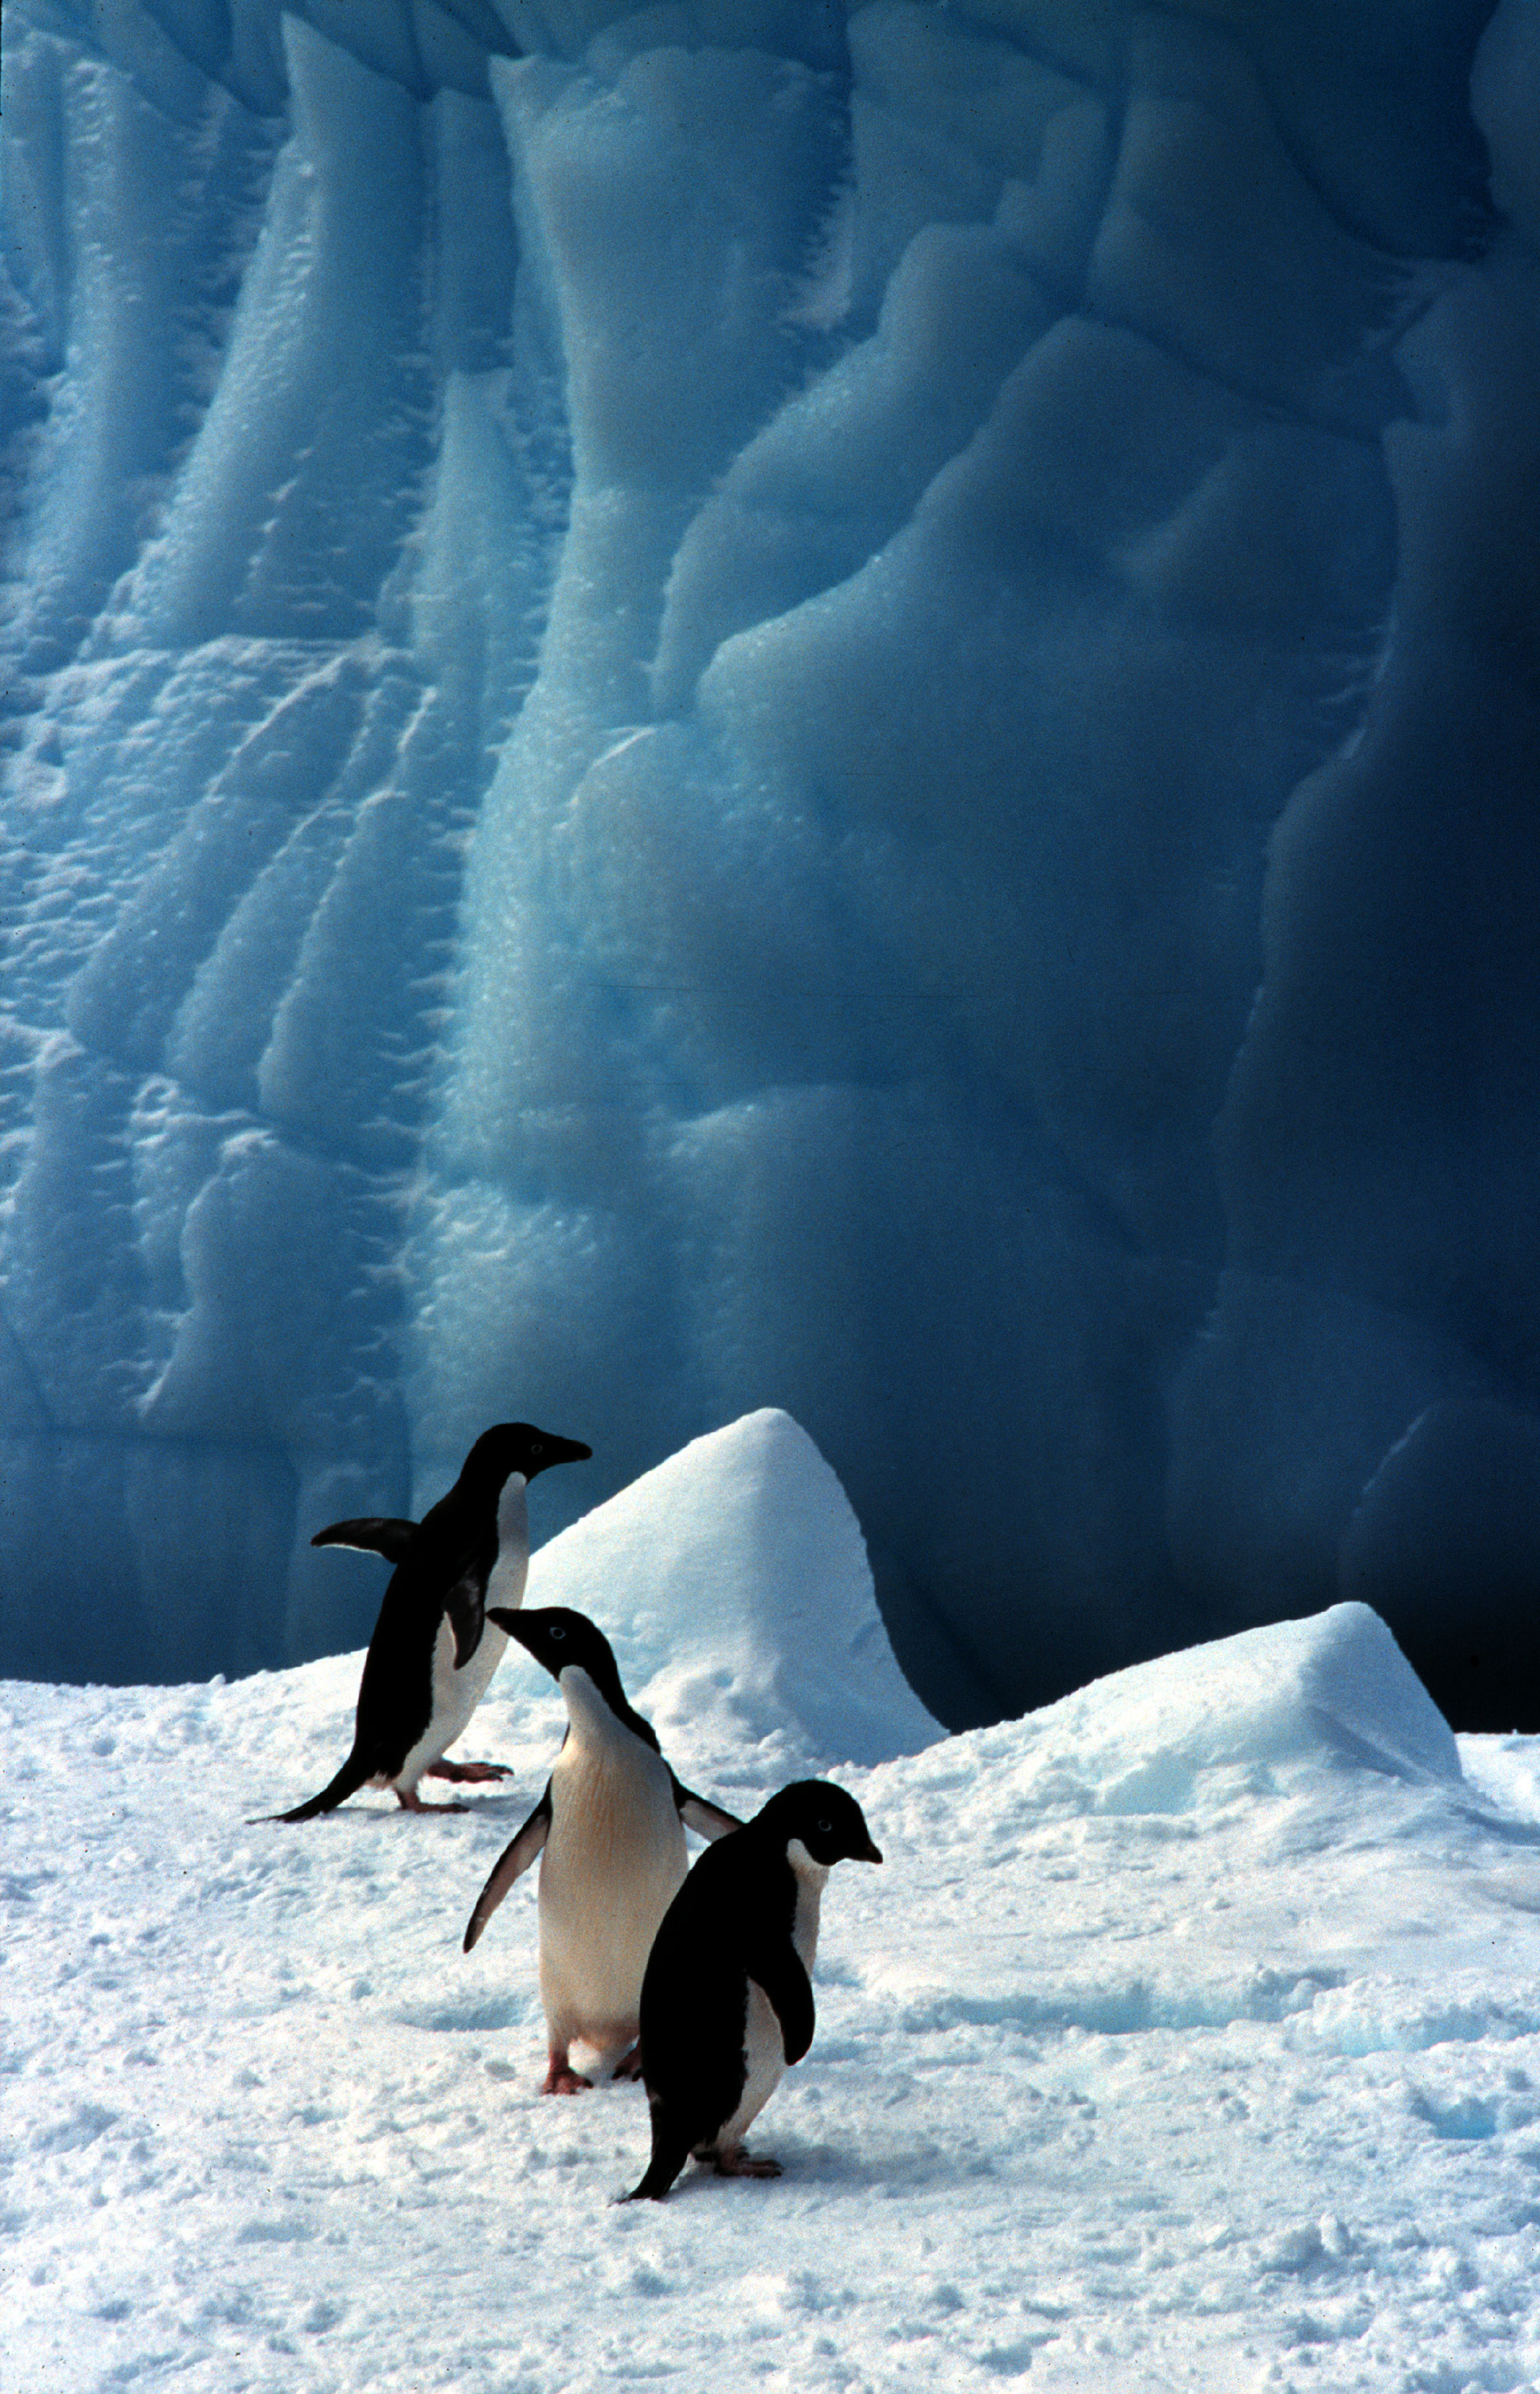 Adelie Penguins on Ice in Antarctica © Greenpeace / Roger Grace